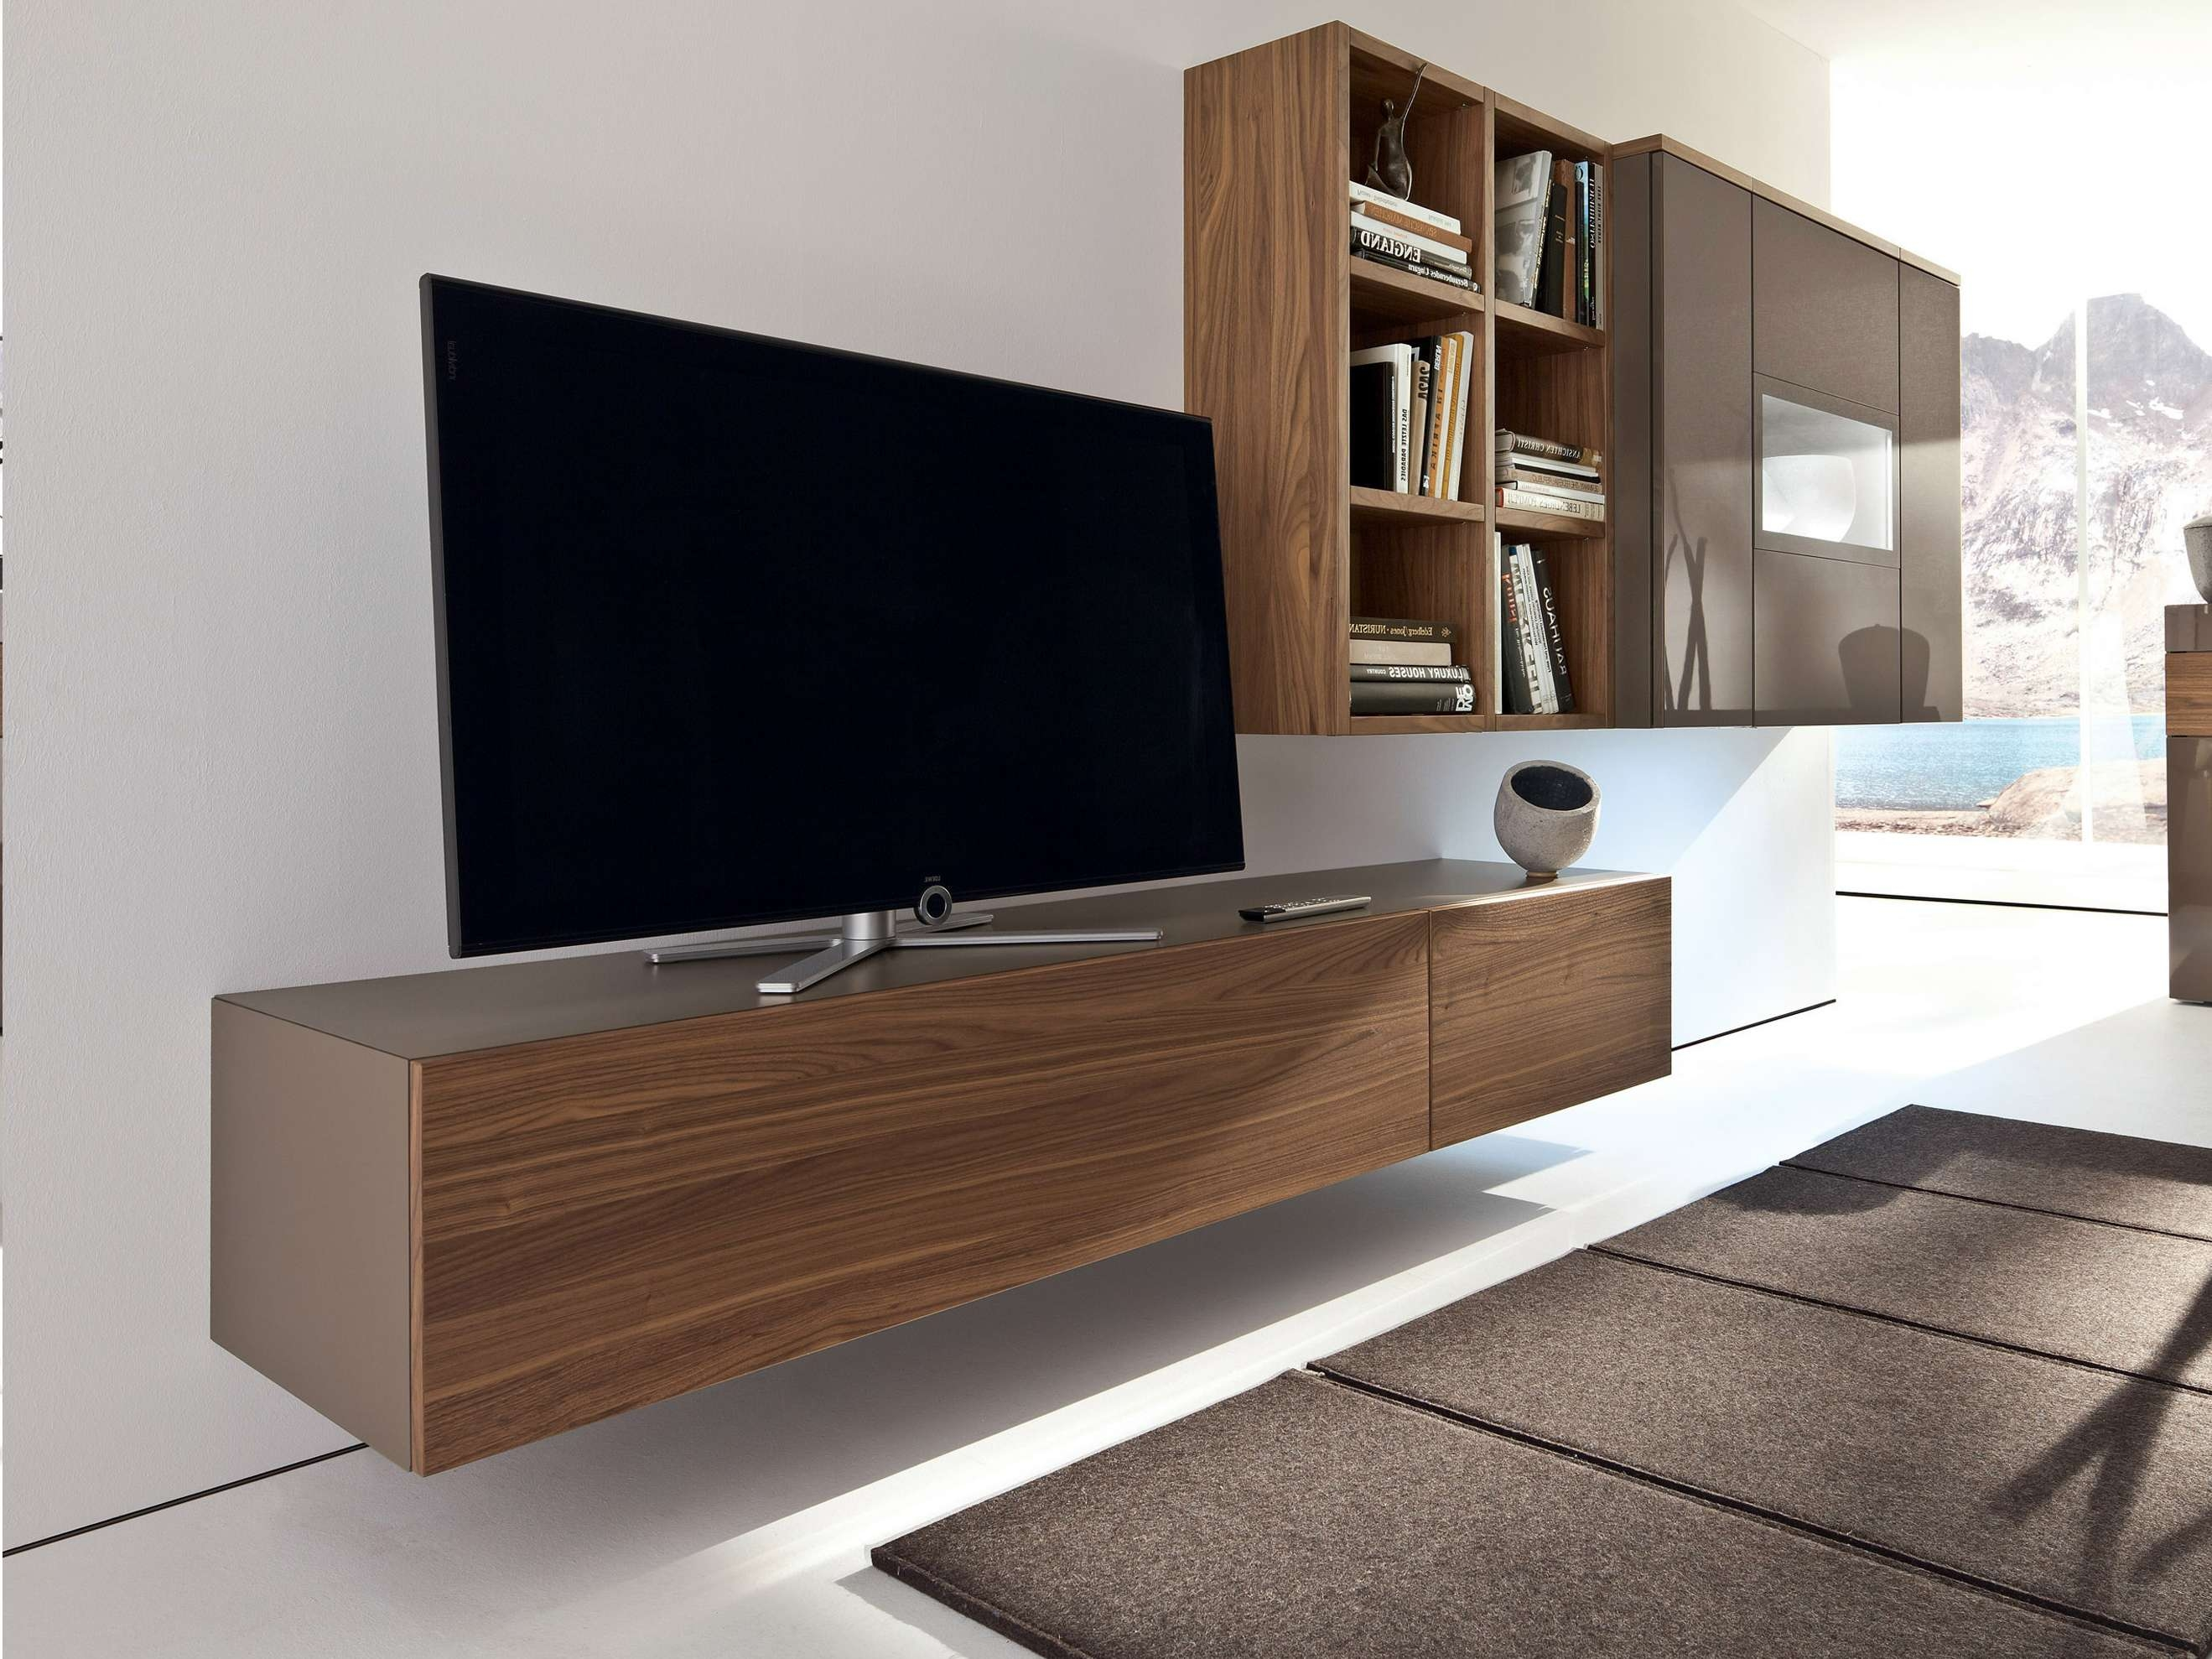 Minimalist Tv Wall Mount Cabinets For Flat Screens For Flat Intended For Wall Mounted Tv Cabinets For Flat Screens With Doors (View 7 of 20)